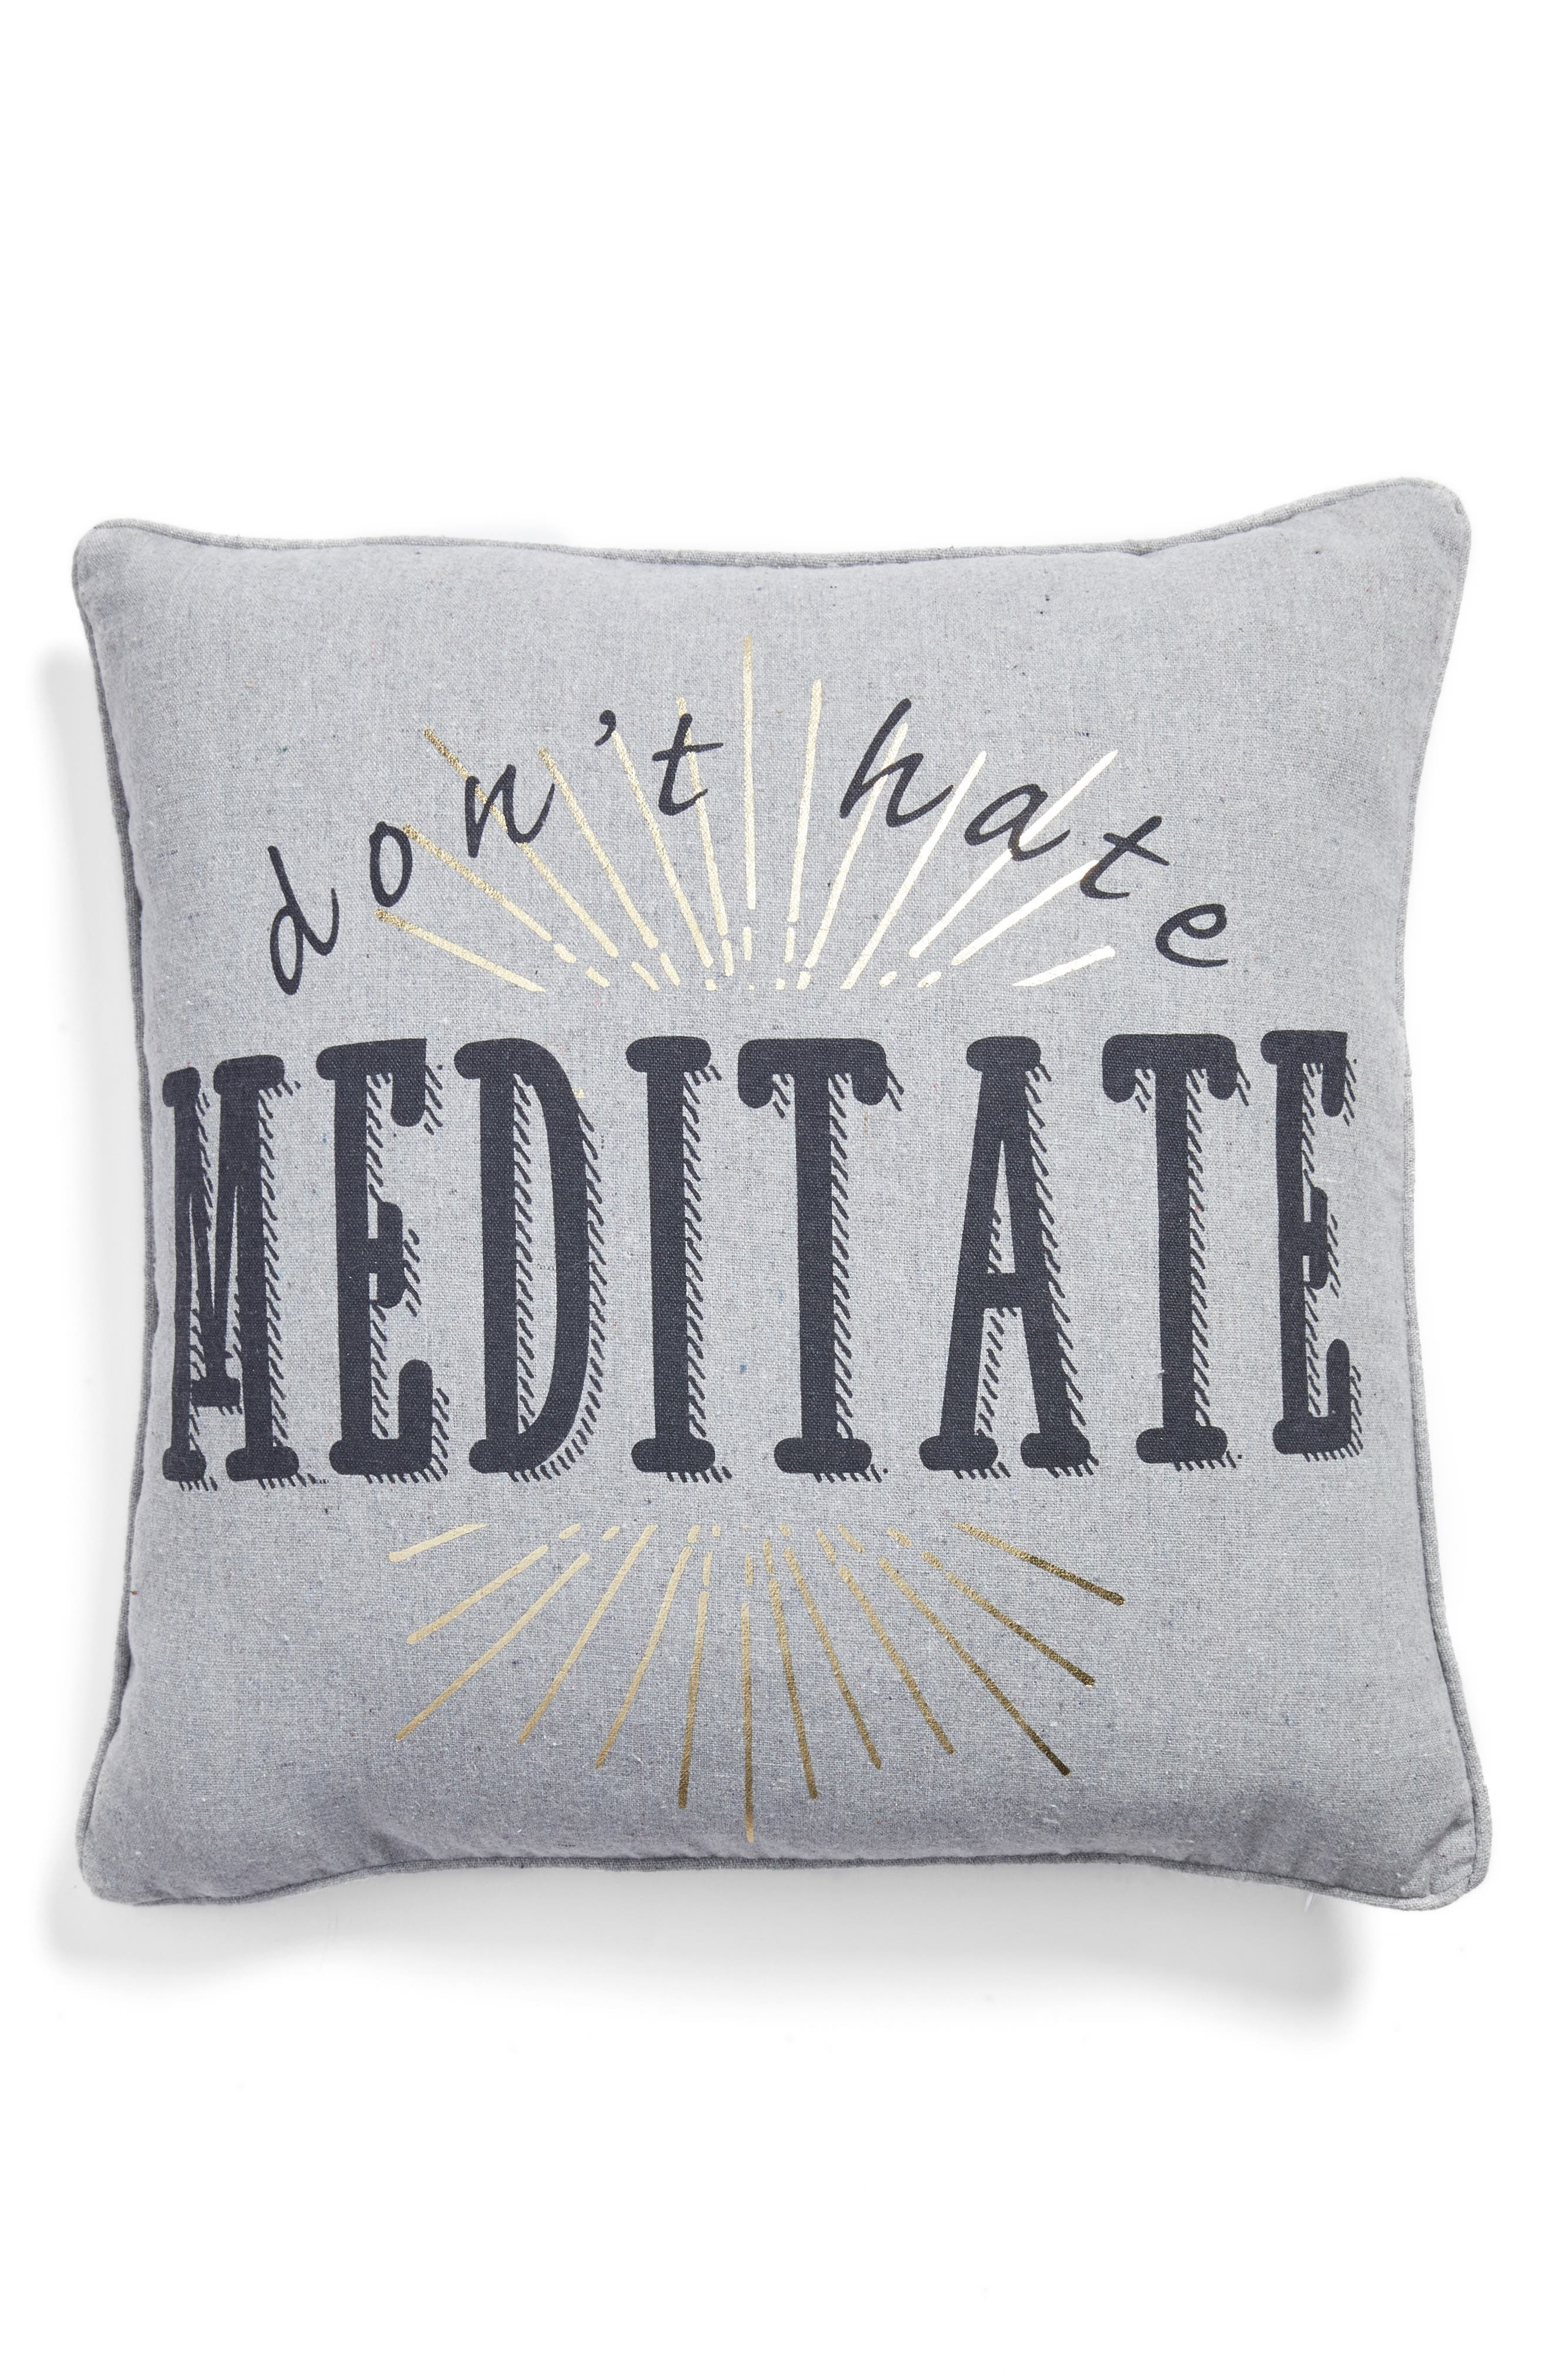 Don't Hate Meditate Pillow,                             Main thumbnail 1, color,                             Grey